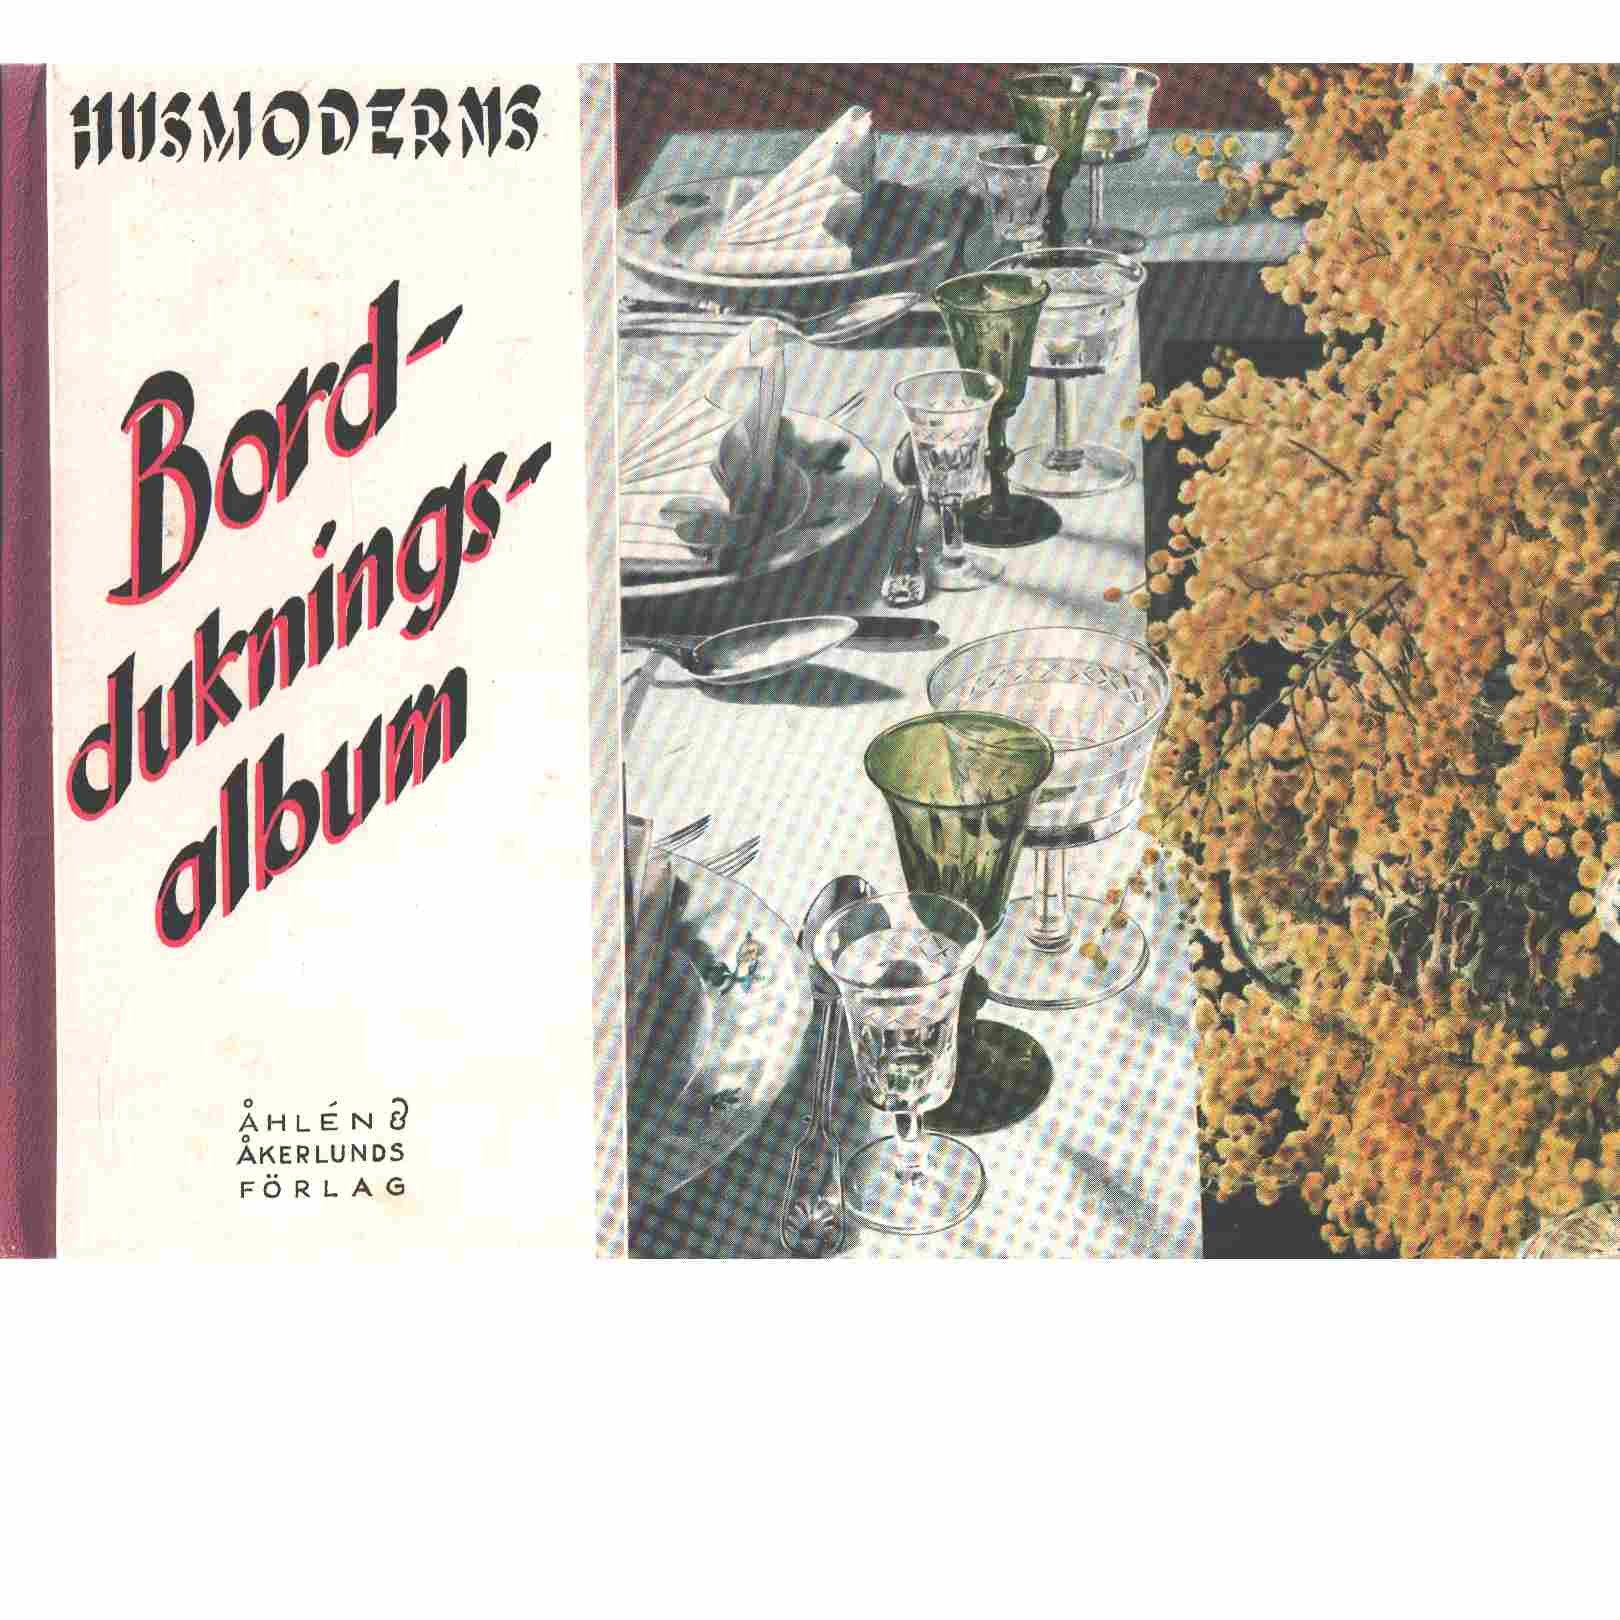 Husmoderns Bord-duknings album - Red.